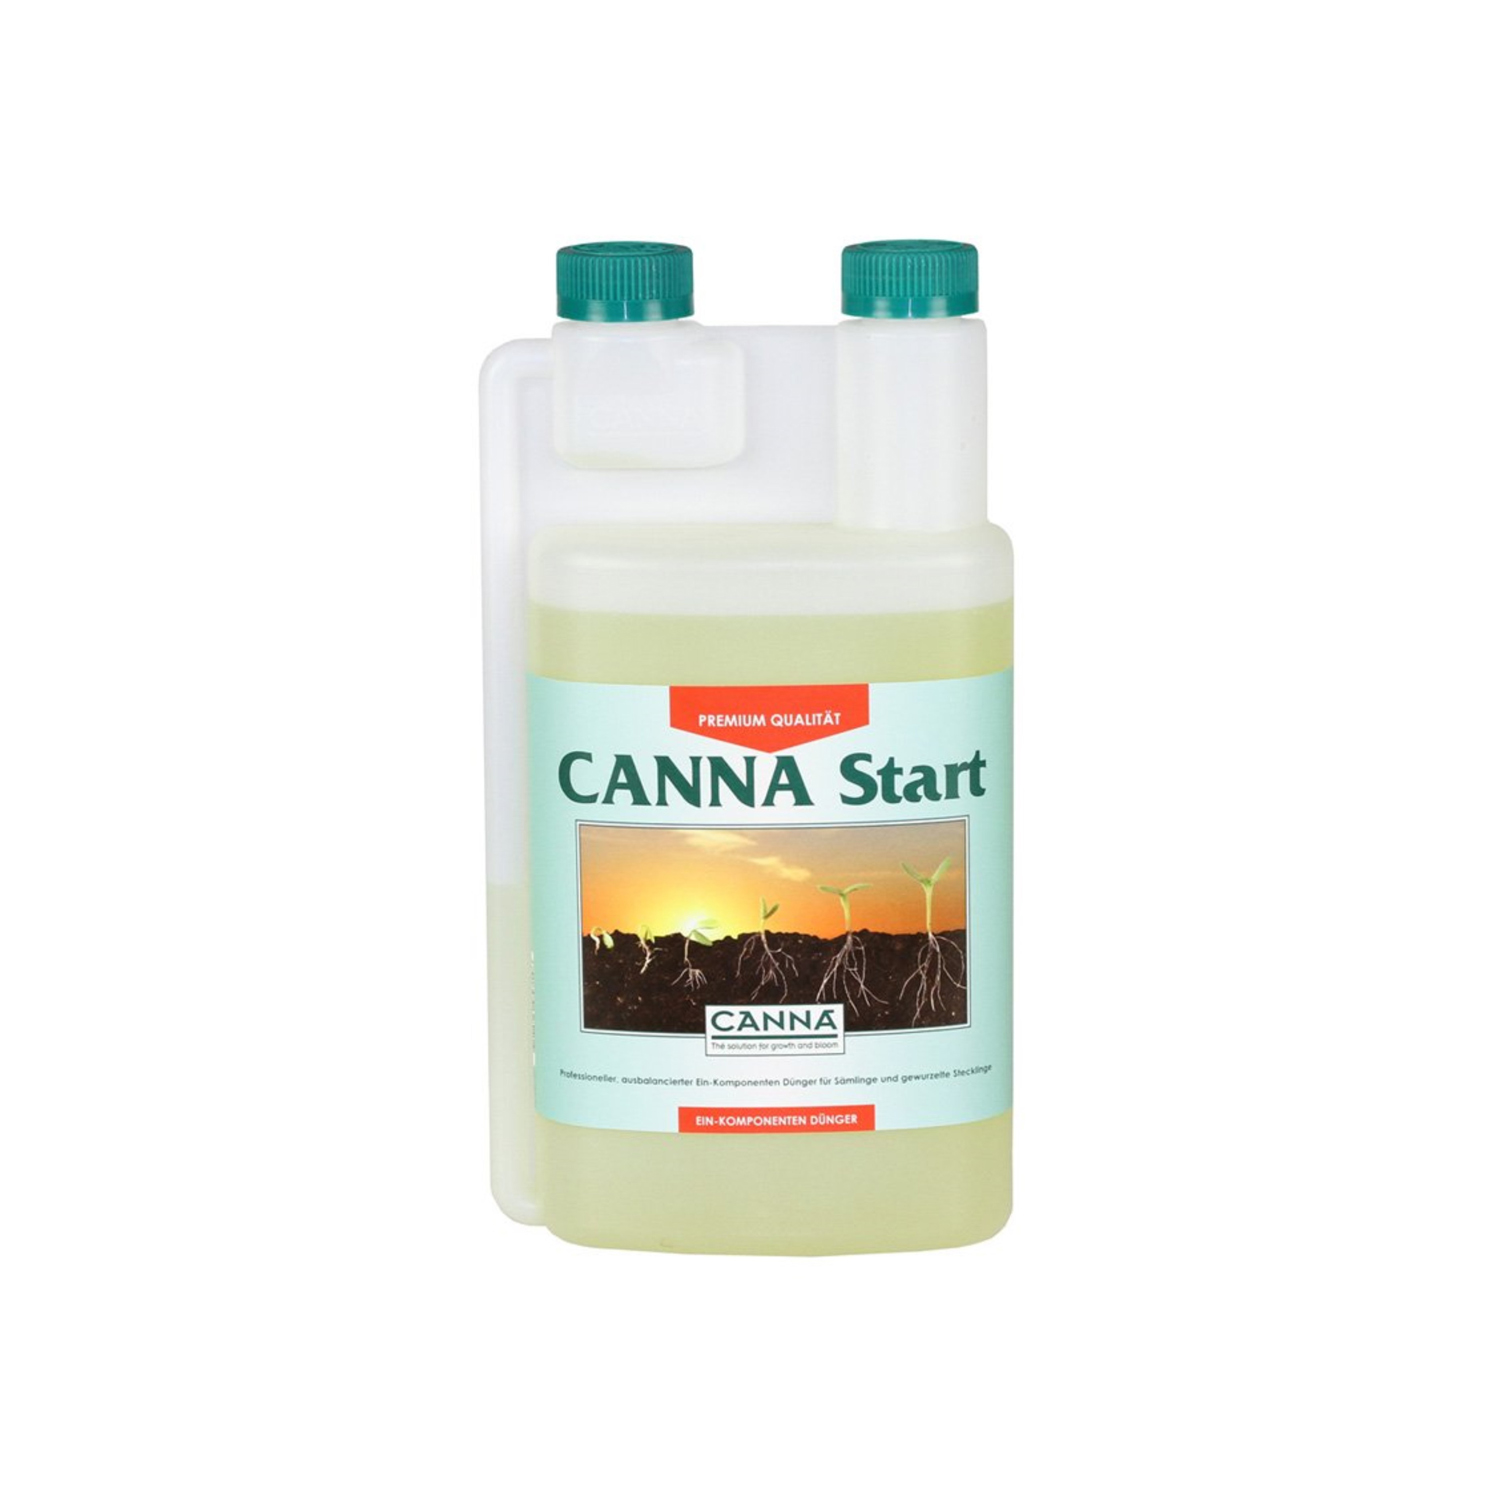 Hydroponic Dünger Canna Start Canna Additives Hydroponic Nutrient 500ml